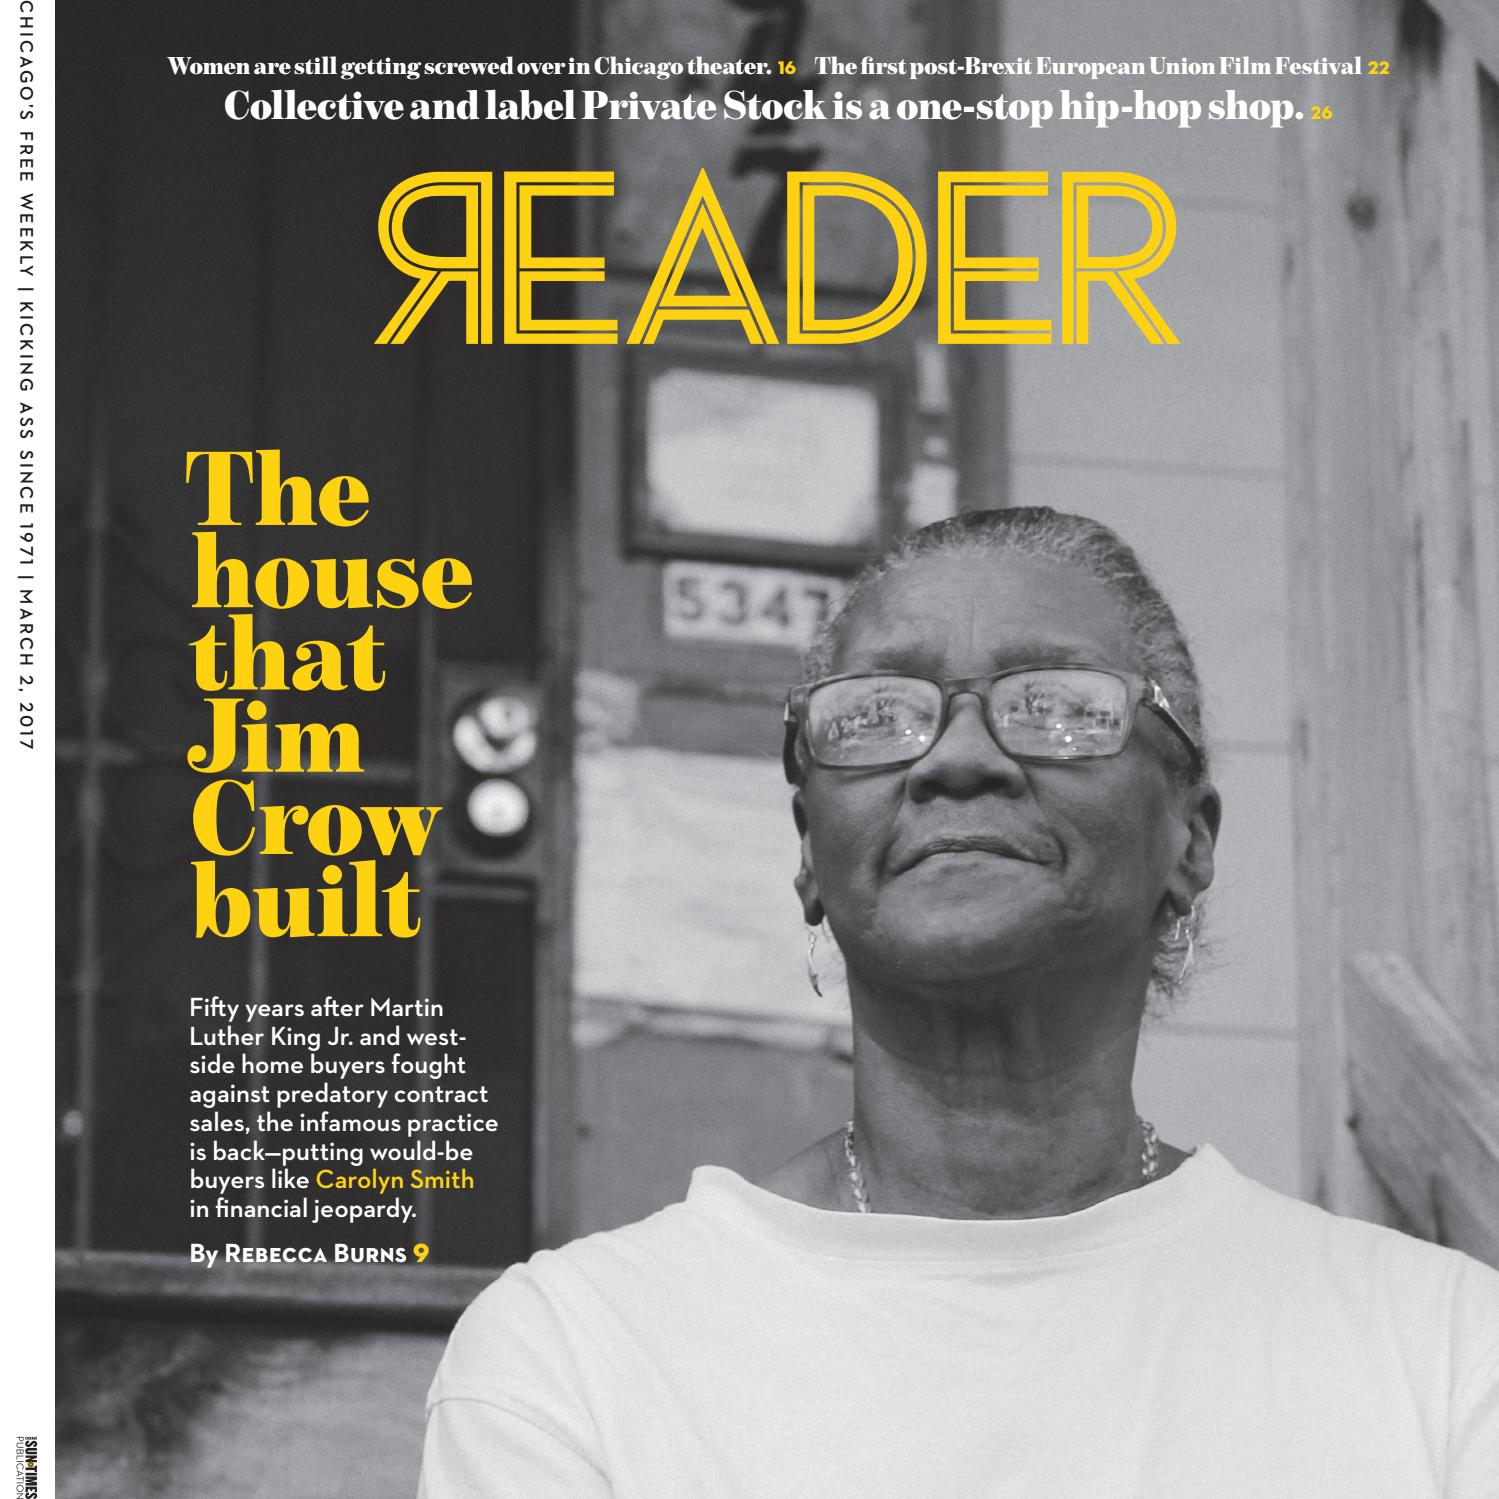 337be1dd Print Issue of March 2, 2017 (Volume 46, Number 21) by Chicago Reader -  issuu